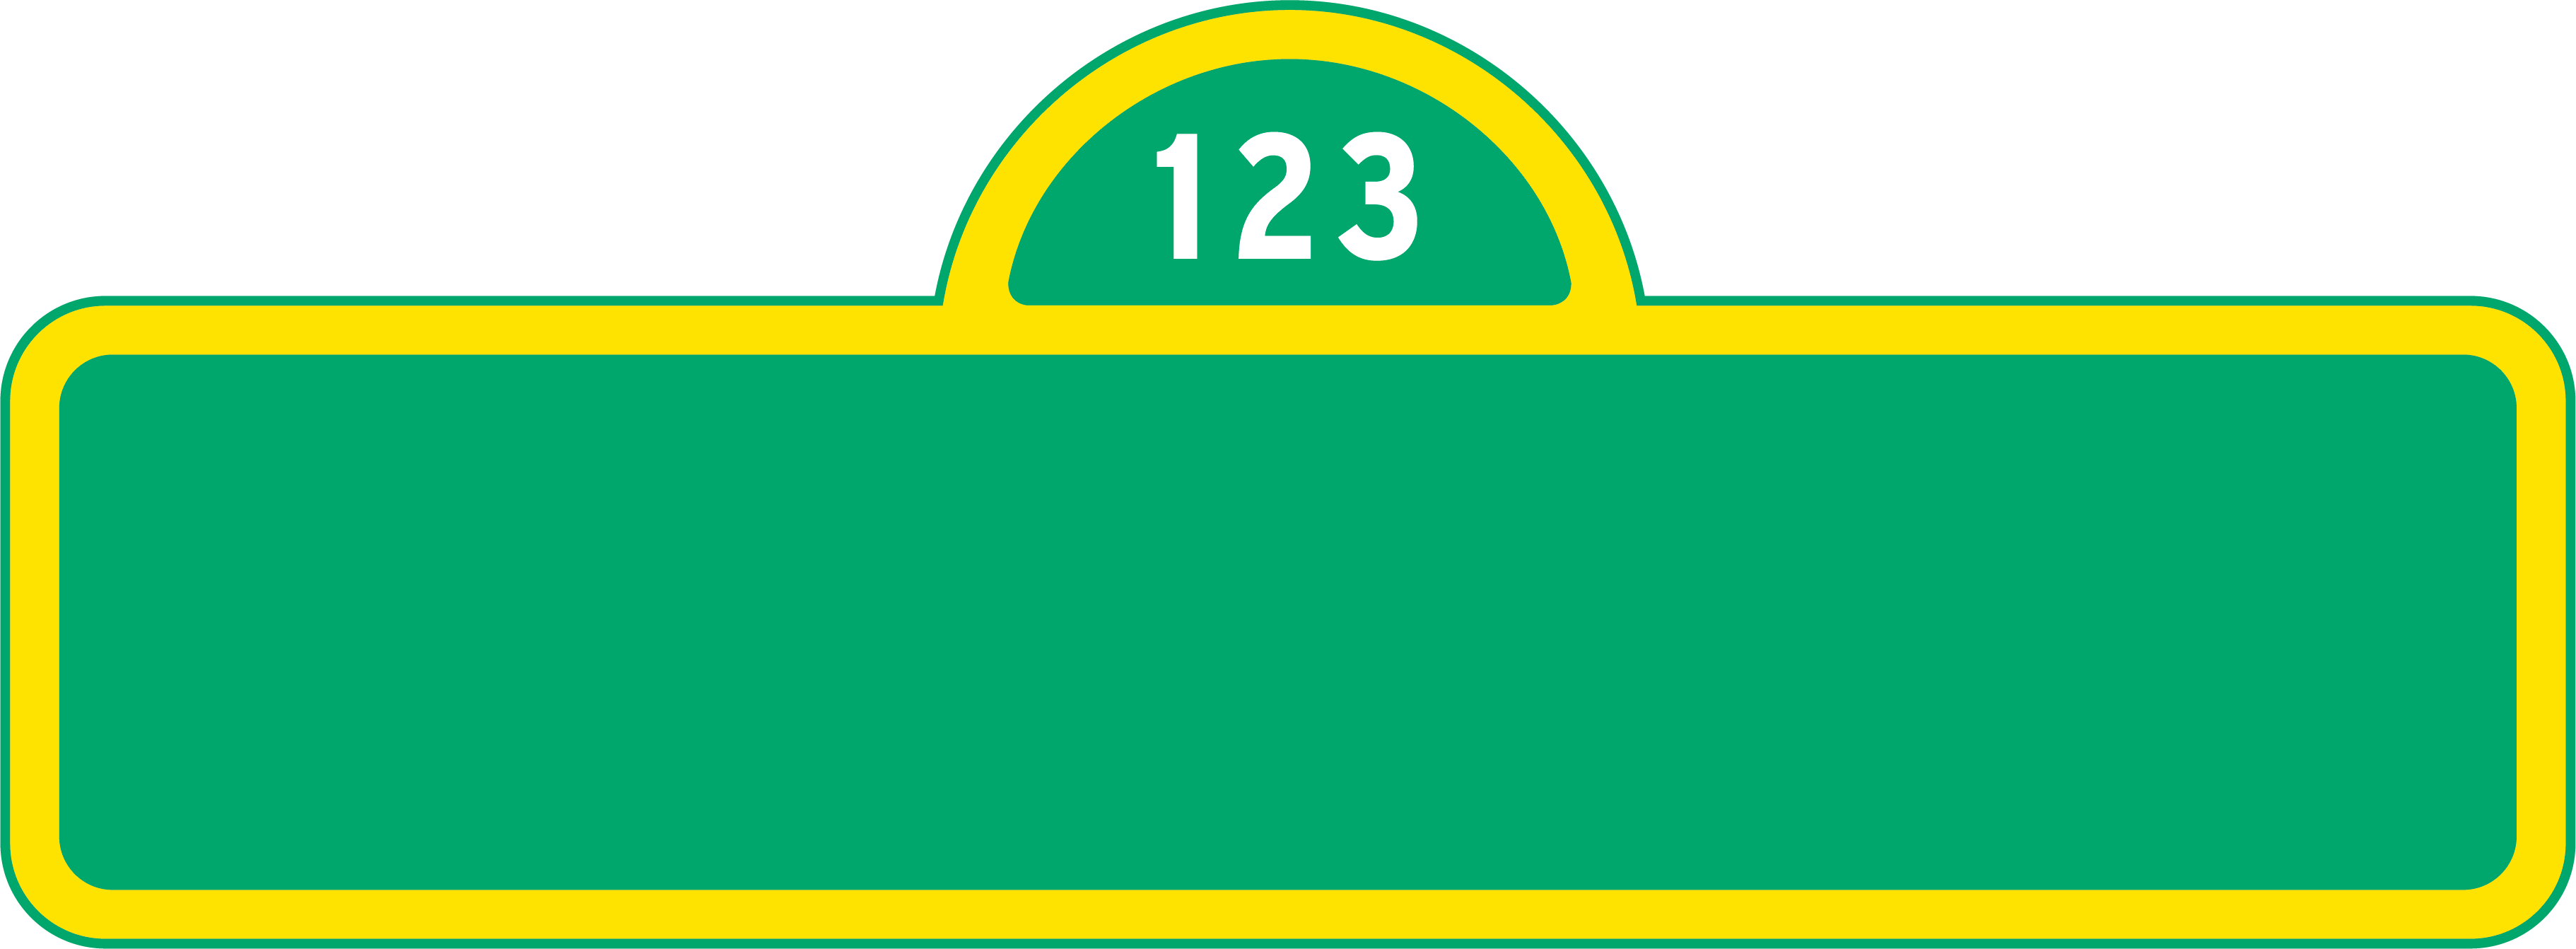 Sesame street sign png. Blank so it can